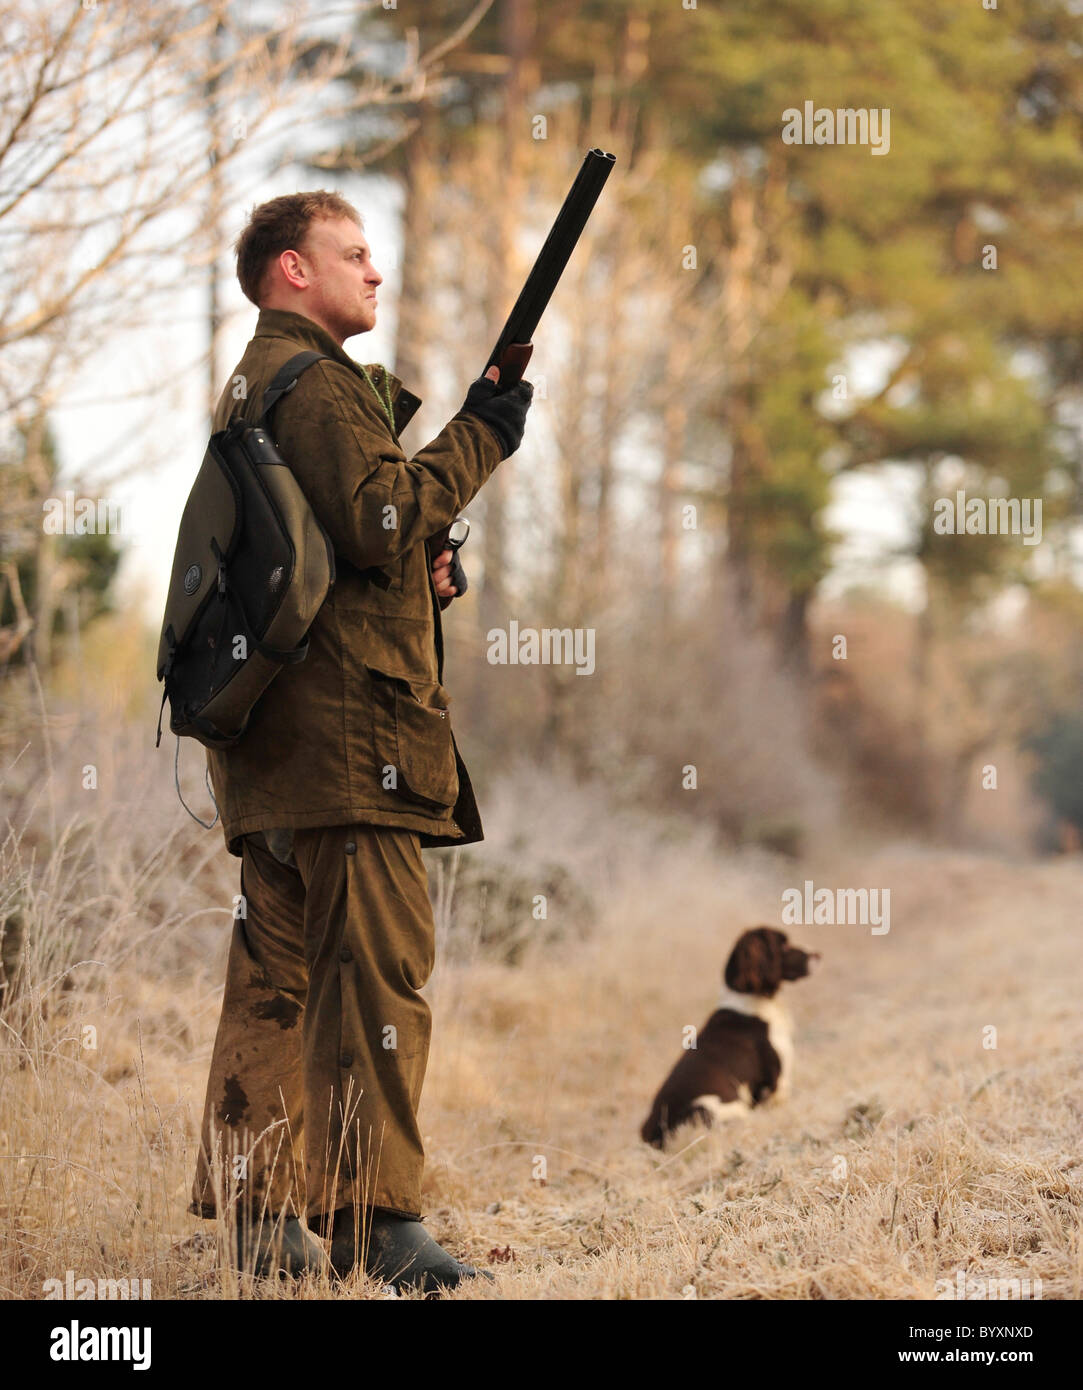 man shooting with his dog in UK - Stock Image